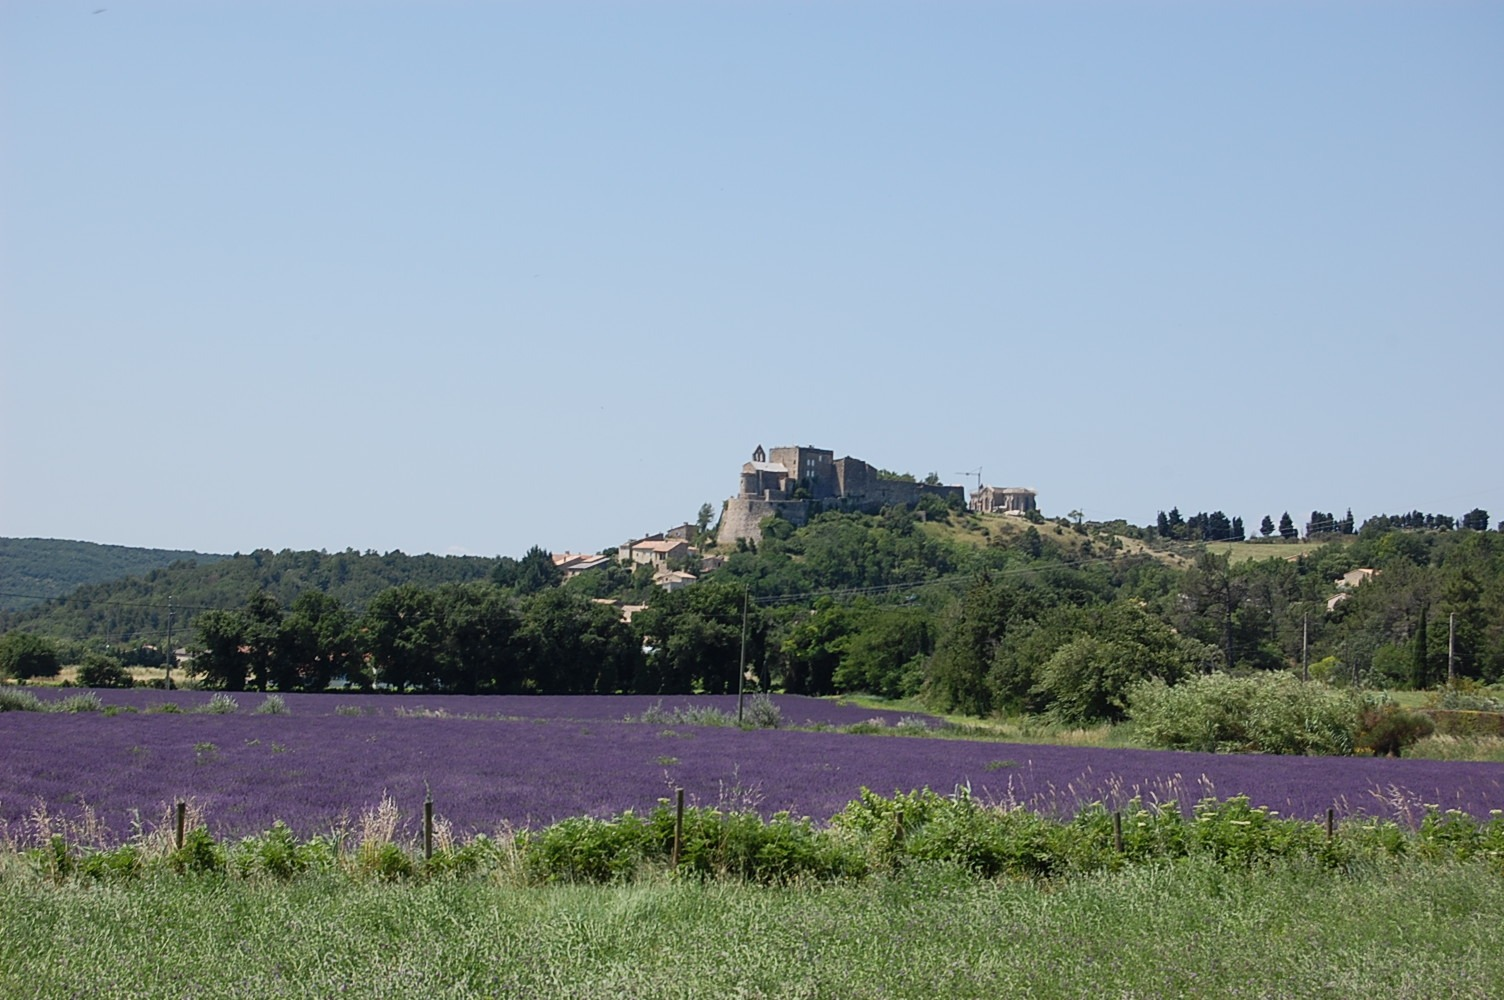 Self guided bike tour on the Lavender Route of Provence